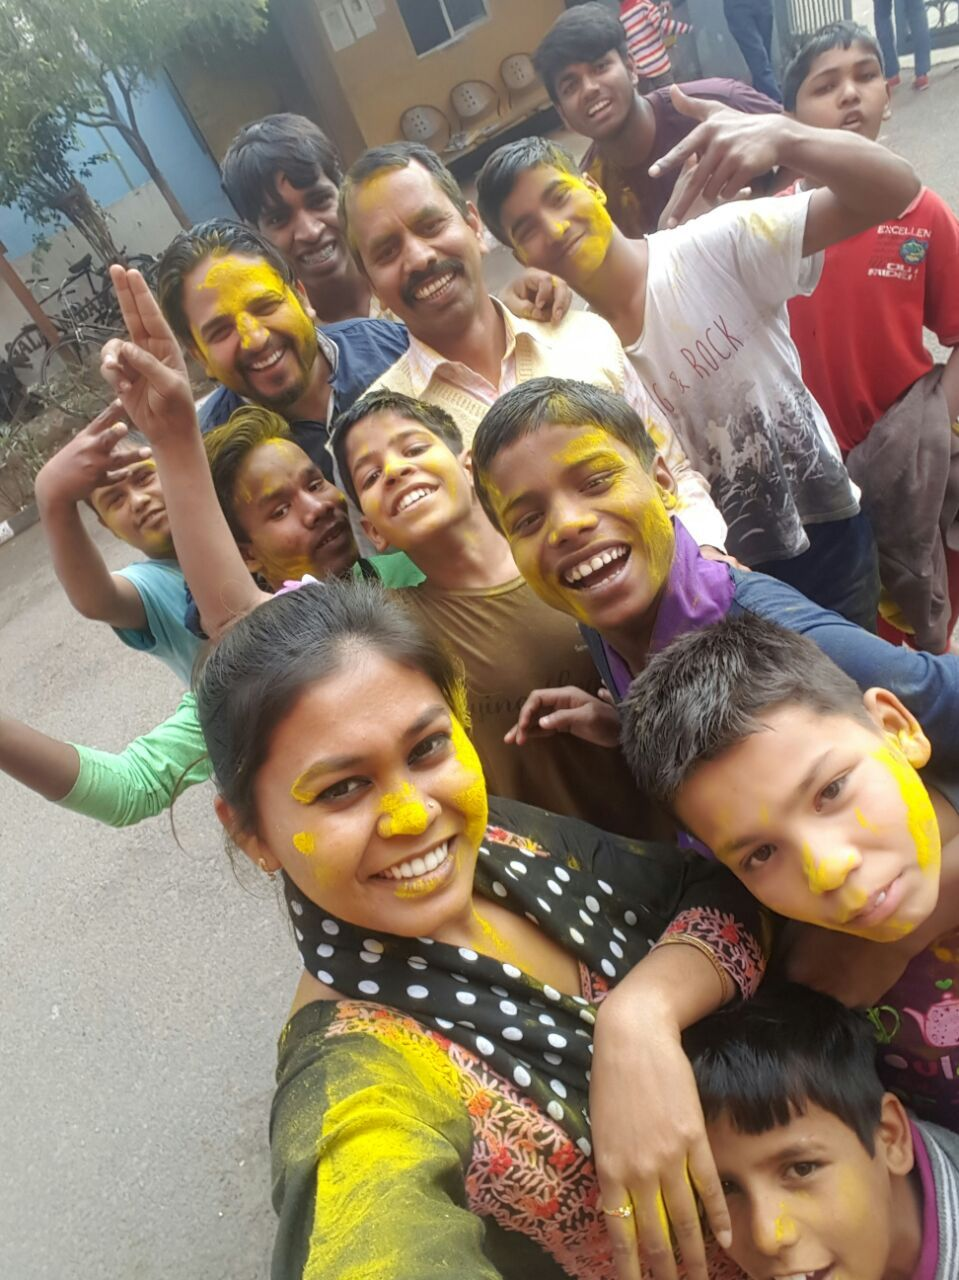 On the occasion of #Holi festival, the #Salaam_Baalak_Trust family got together and had a colourful celebration. The children had a fantastic full-filled day immersed in colours and laughter.